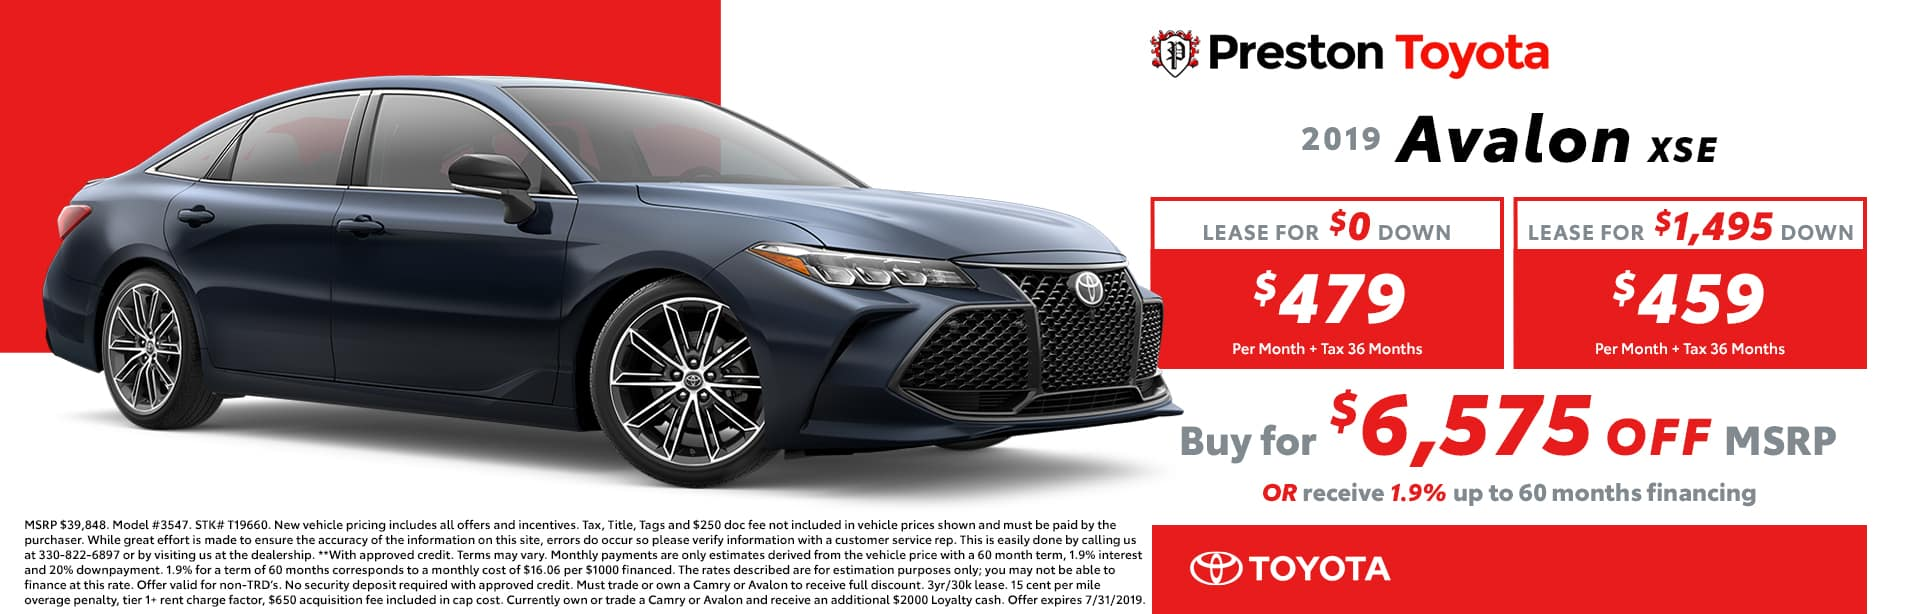 July special on the 2019 Toyota Avalon